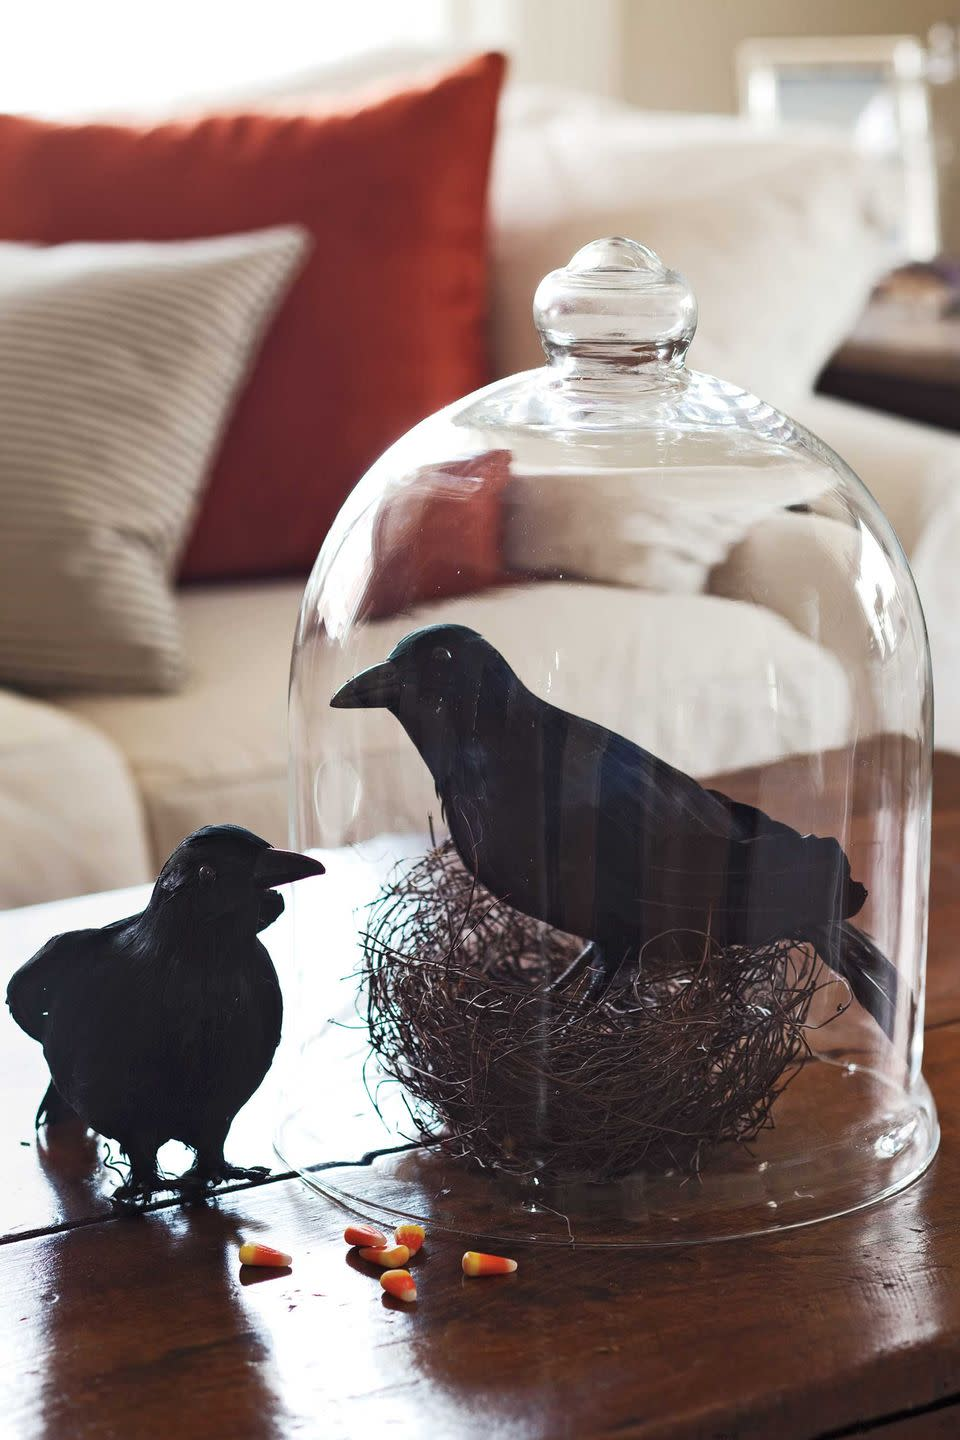 """<p>Serve up a helping of raven under glass with craft store crows and a real or faux nest under a glass hurricane. Nevermore, nevermore! </p><p><strong>What You'll Need</strong>: <a href=""""https://www.amazon.com/Touch-Black-Feathered-Ravens-Halloween/dp/B07KGD8RTQ/ref=sr_1_5?dchild=1&keywords=fake+raven&qid=1594918771&sr=8-5&tag=syn-yahoo-20&ascsubtag=%5Bartid%7C10070.g.1279%5Bsrc%7Cyahoo-us"""" rel=""""nofollow noopener"""" target=""""_blank"""" data-ylk=""""slk:Fake birds"""" class=""""link rapid-noclick-resp"""">Fake birds</a> ($17, Amazon); <a href=""""https://www.amazon.com/Industrial-Medium-Desert-Dessert-Display/dp/B01L5ZQD6S/ref=sr_1_5?dchild=1&keywords=glass+dessert+topper&qid=1594997079&sr=8-5&tag=syn-yahoo-20&ascsubtag=%5Bartid%7C10070.g.1279%5Bsrc%7Cyahoo-us"""" rel=""""nofollow noopener"""" target=""""_blank"""" data-ylk=""""slk:glass topper"""" class=""""link rapid-noclick-resp"""">glass topper</a> ($28, Amazon)</p>"""